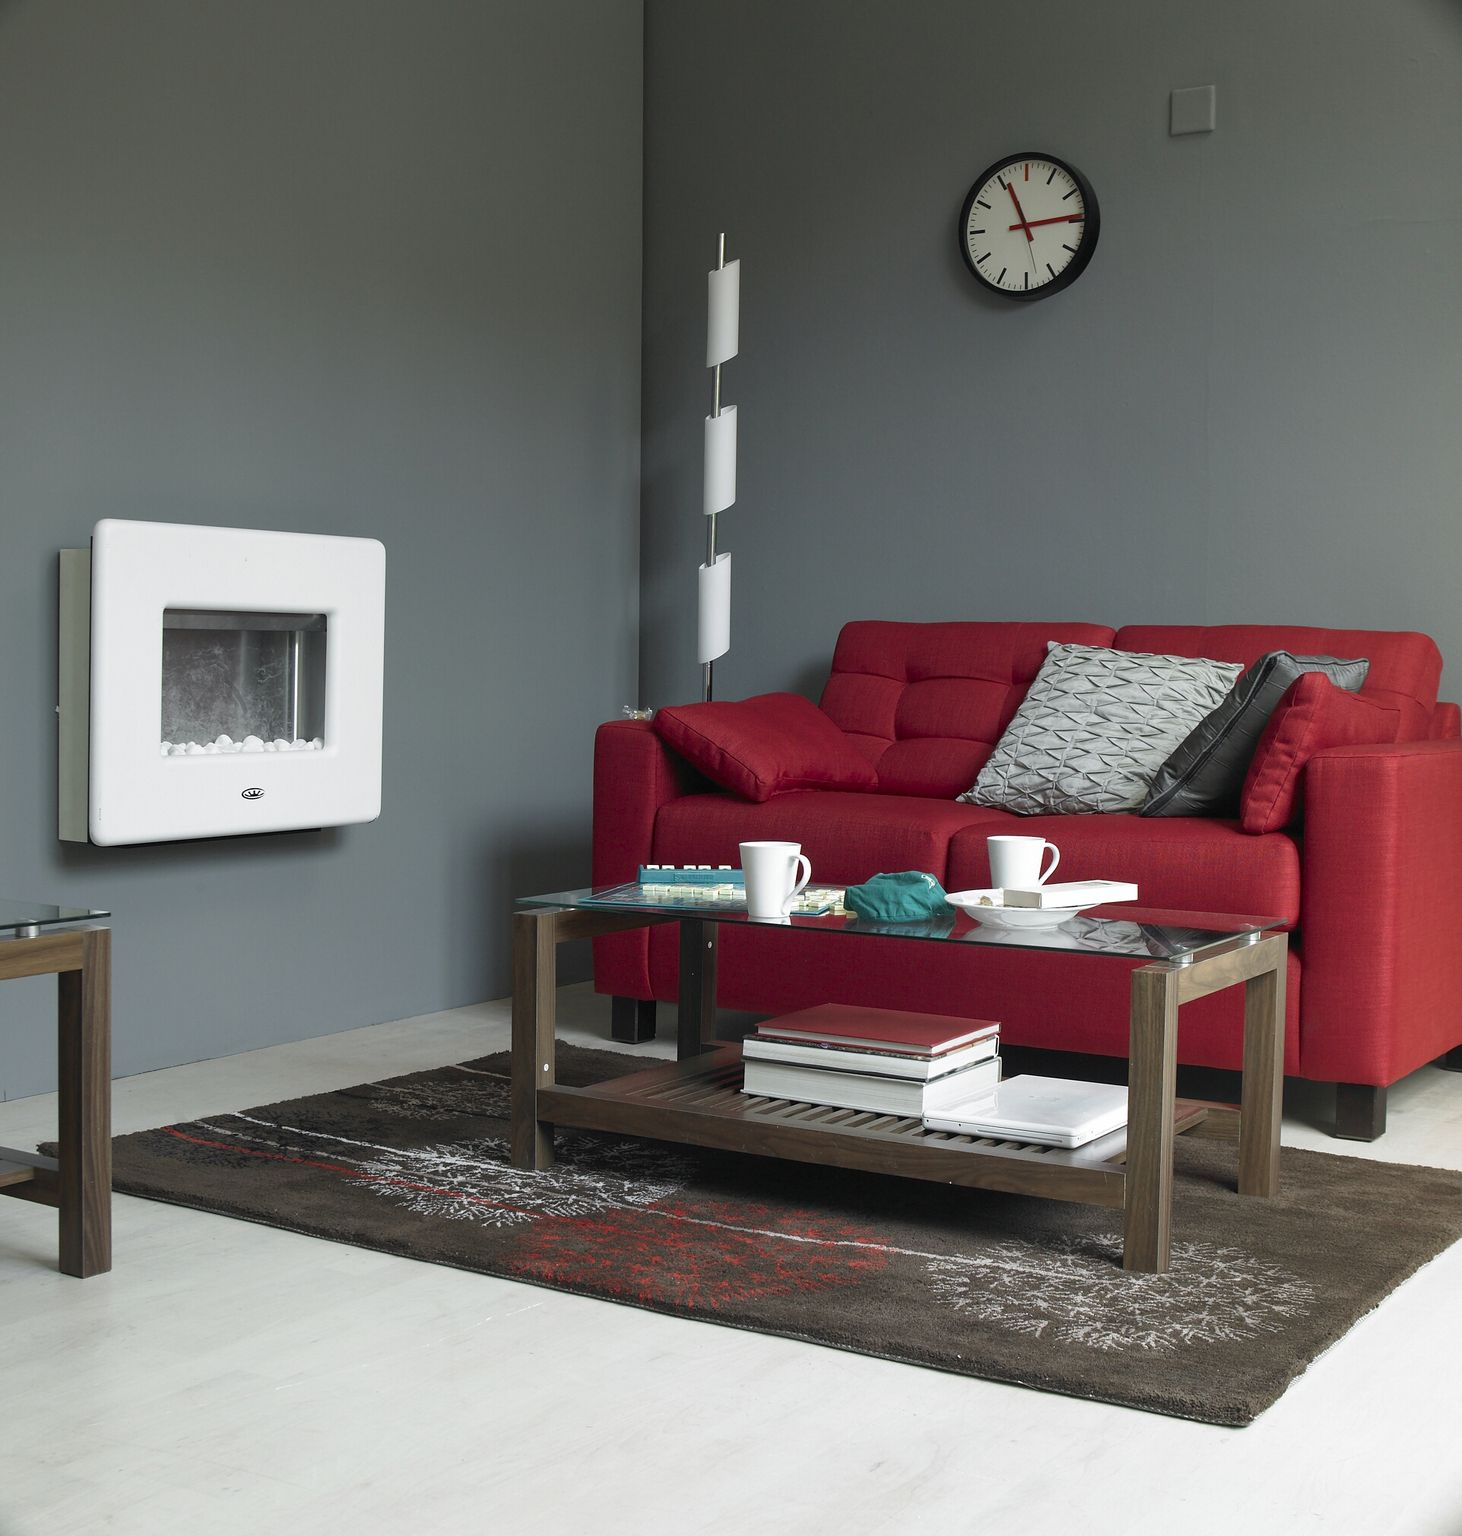 Red Sofa Design Living Room Living Room With Red Sofa Room Small Character Grey Living Room